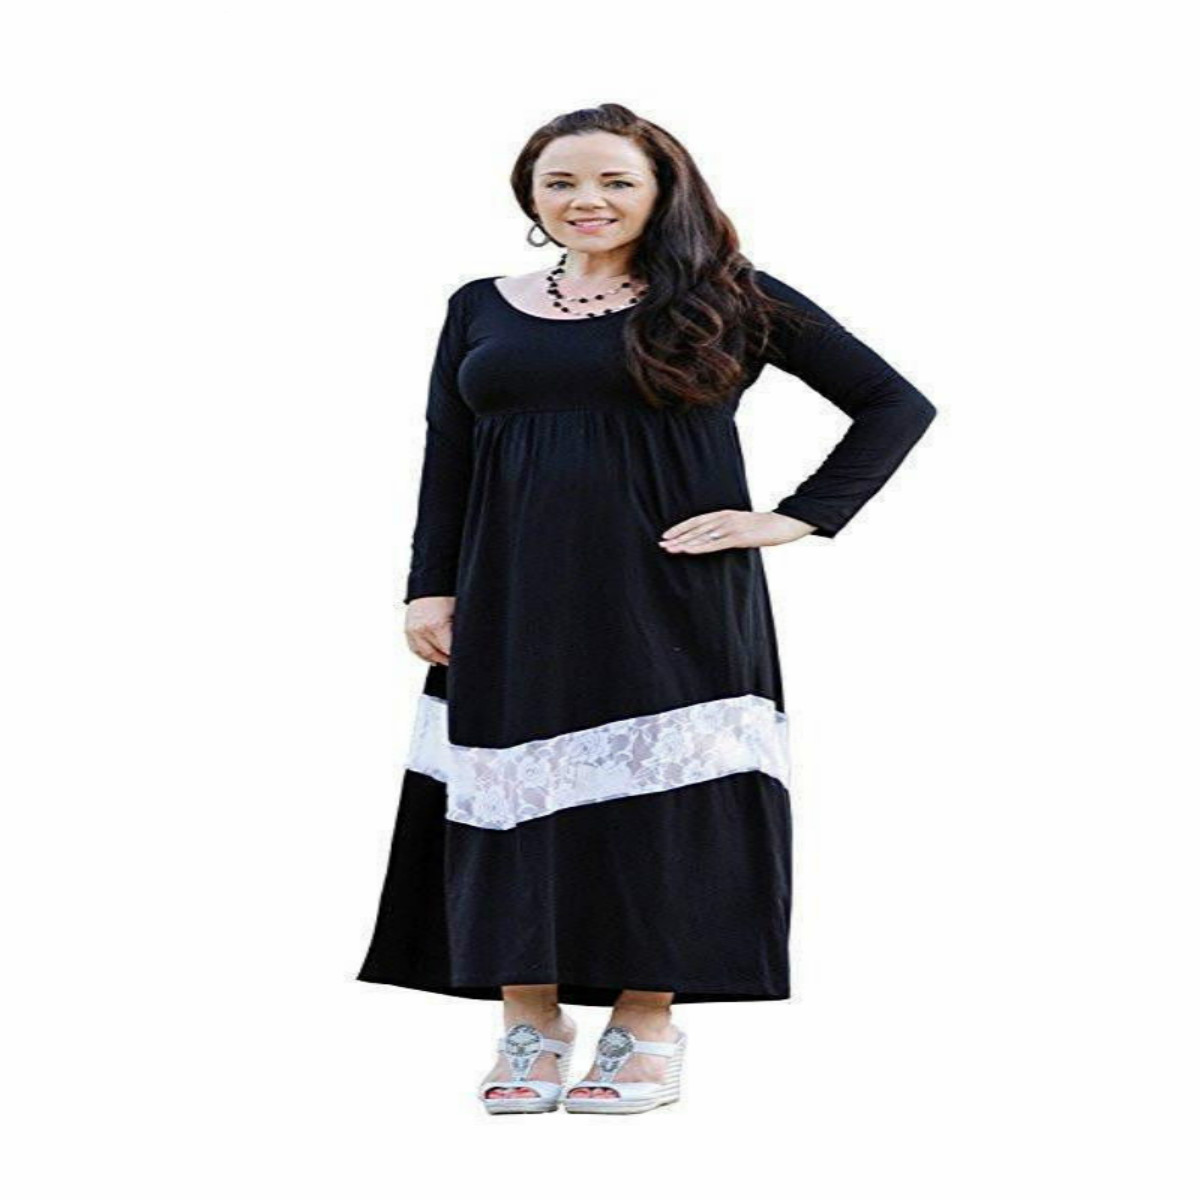 Emmababy Mom Daughter Garments 2018 Lengthy Sleeve Lace Patchwork Informal Floral Gown Household Matching Outfit Matching Household Outfits, Low-cost Matching Household Outfits, Emmababy Mom Daughter Garments 2018 Lengthy Sleeve...